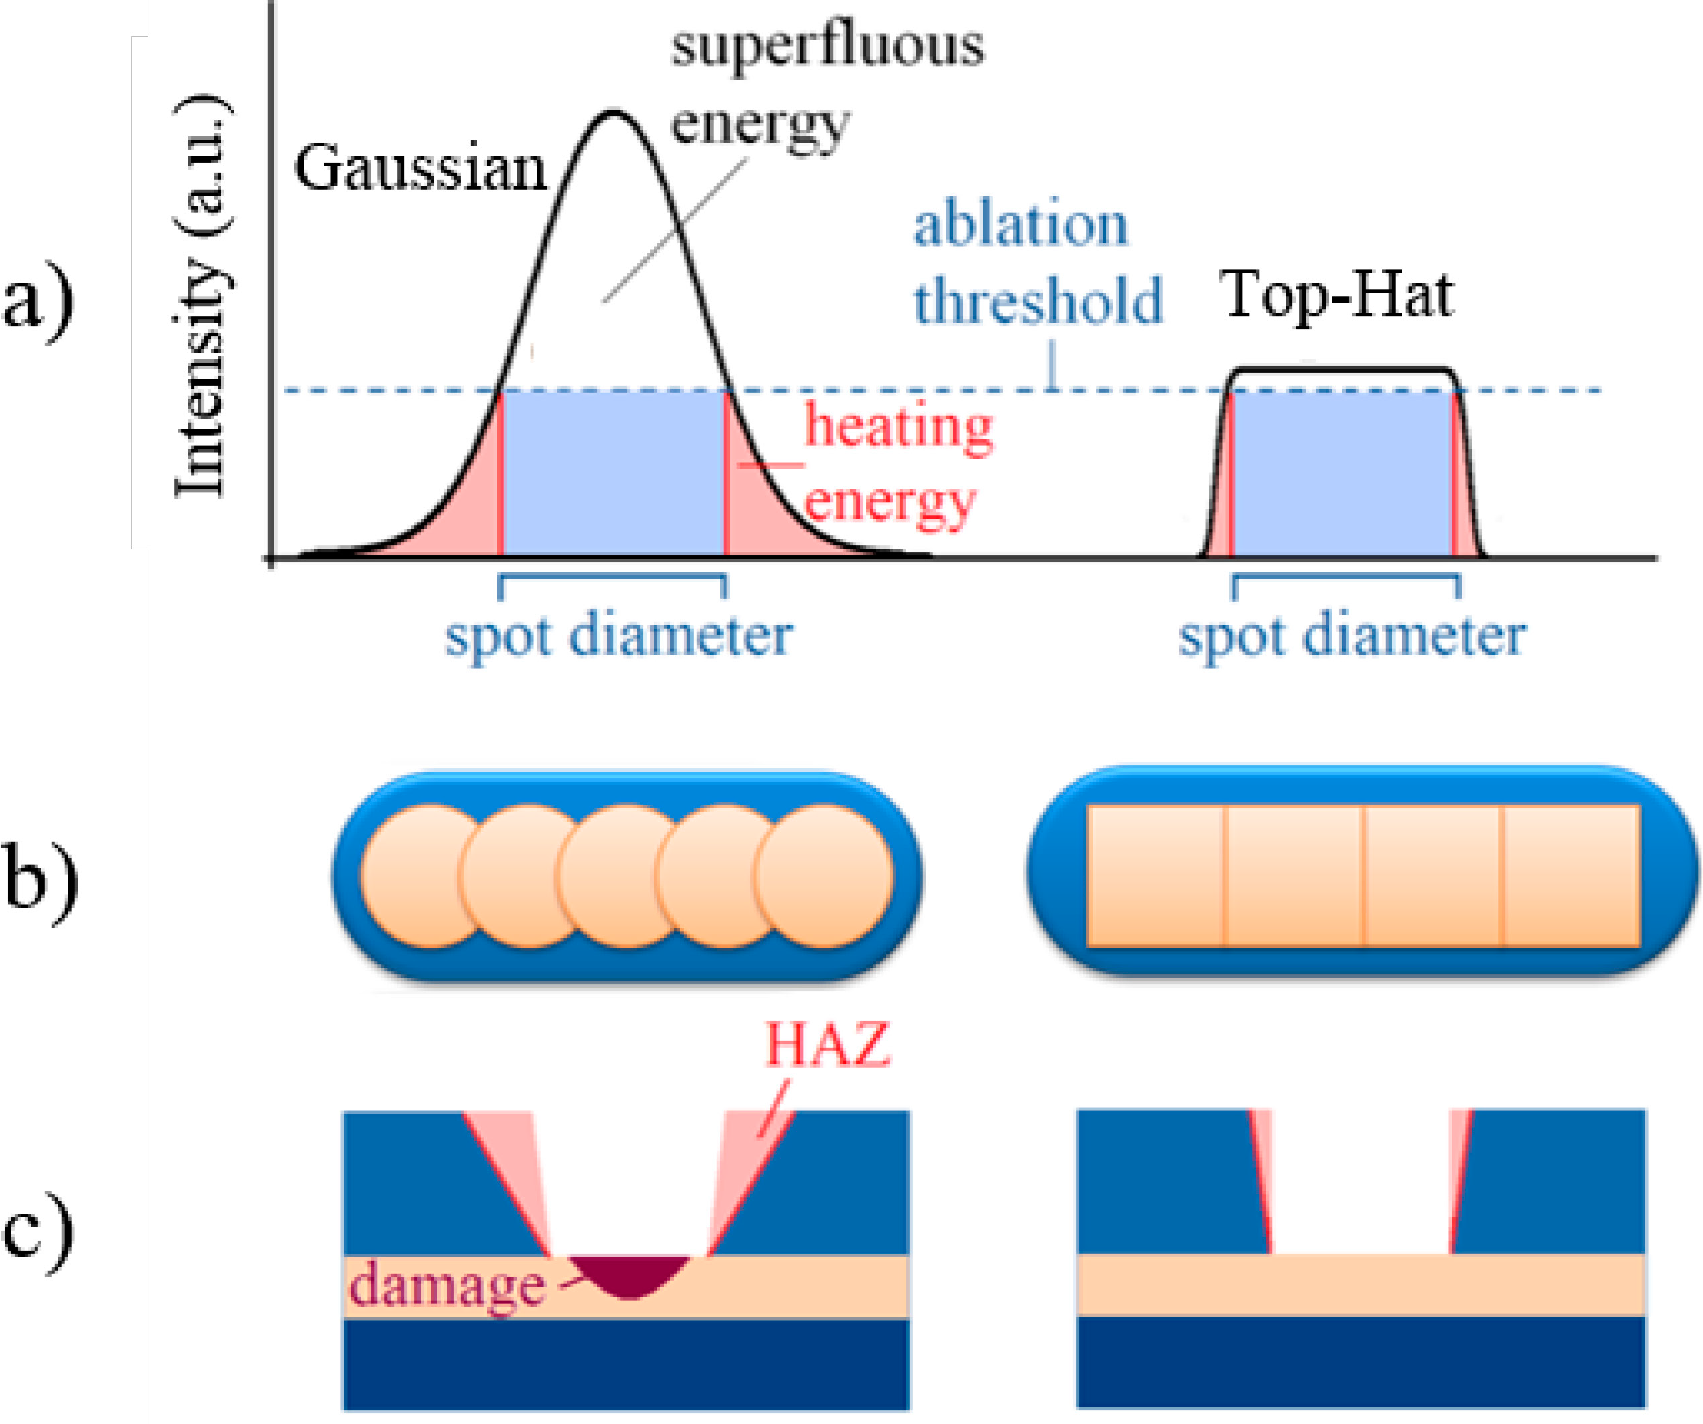 Micromachines | Free Full-Text | Characterization of Laser Beam Shaping Optics Based on Their Ablation Geometry of Thin Films | HTML